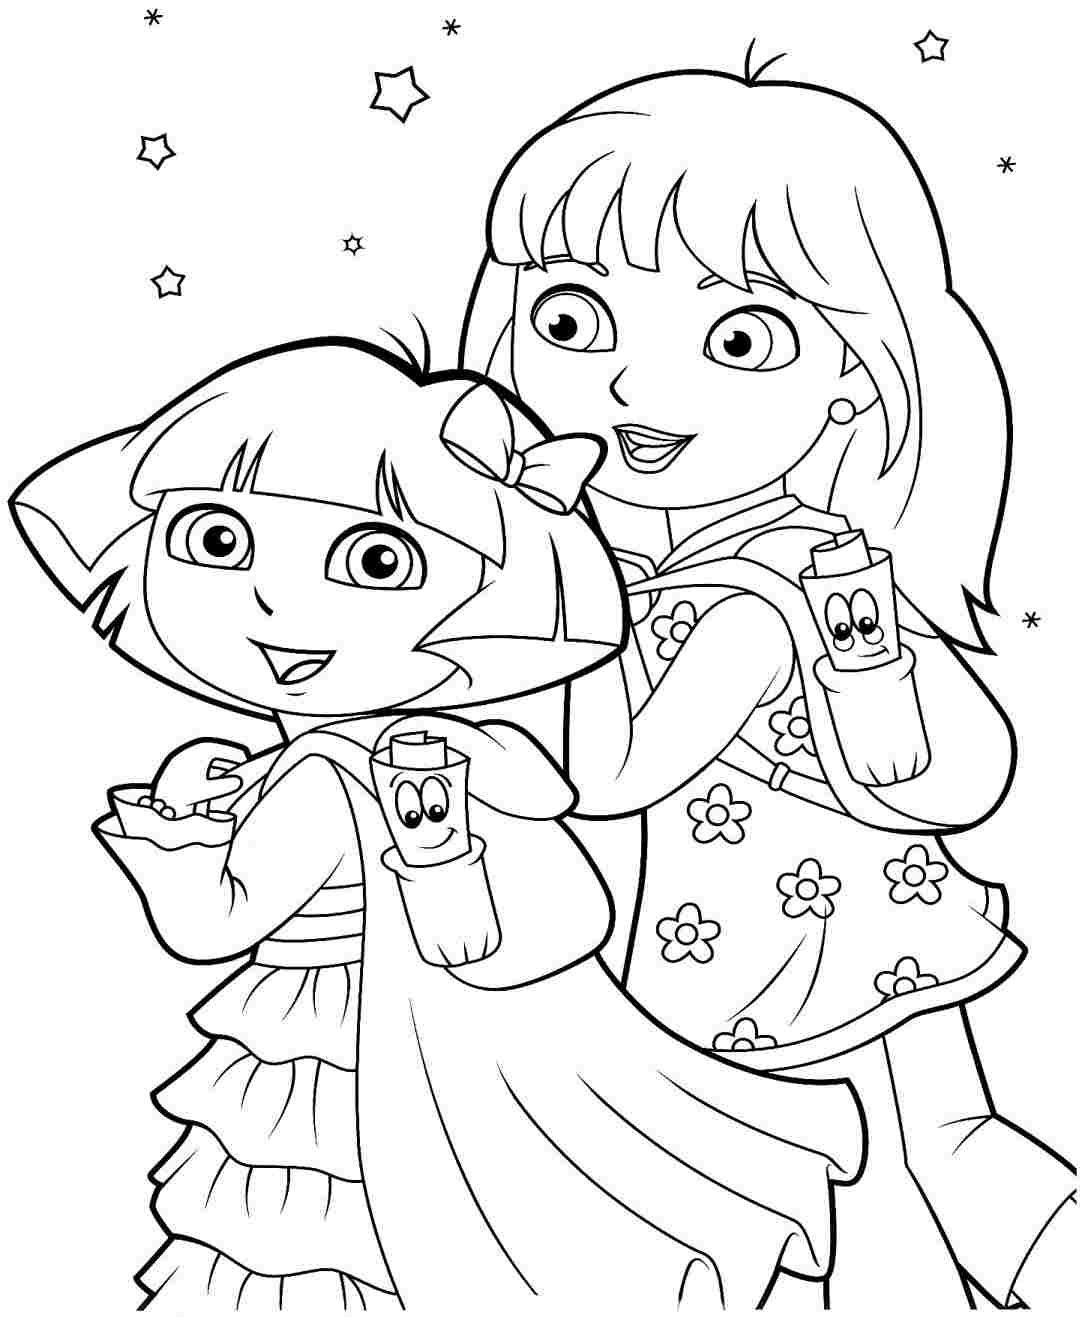 Printable Free Coloring Pages Cartoon Dora The Explorer And Friends For Boys Girls